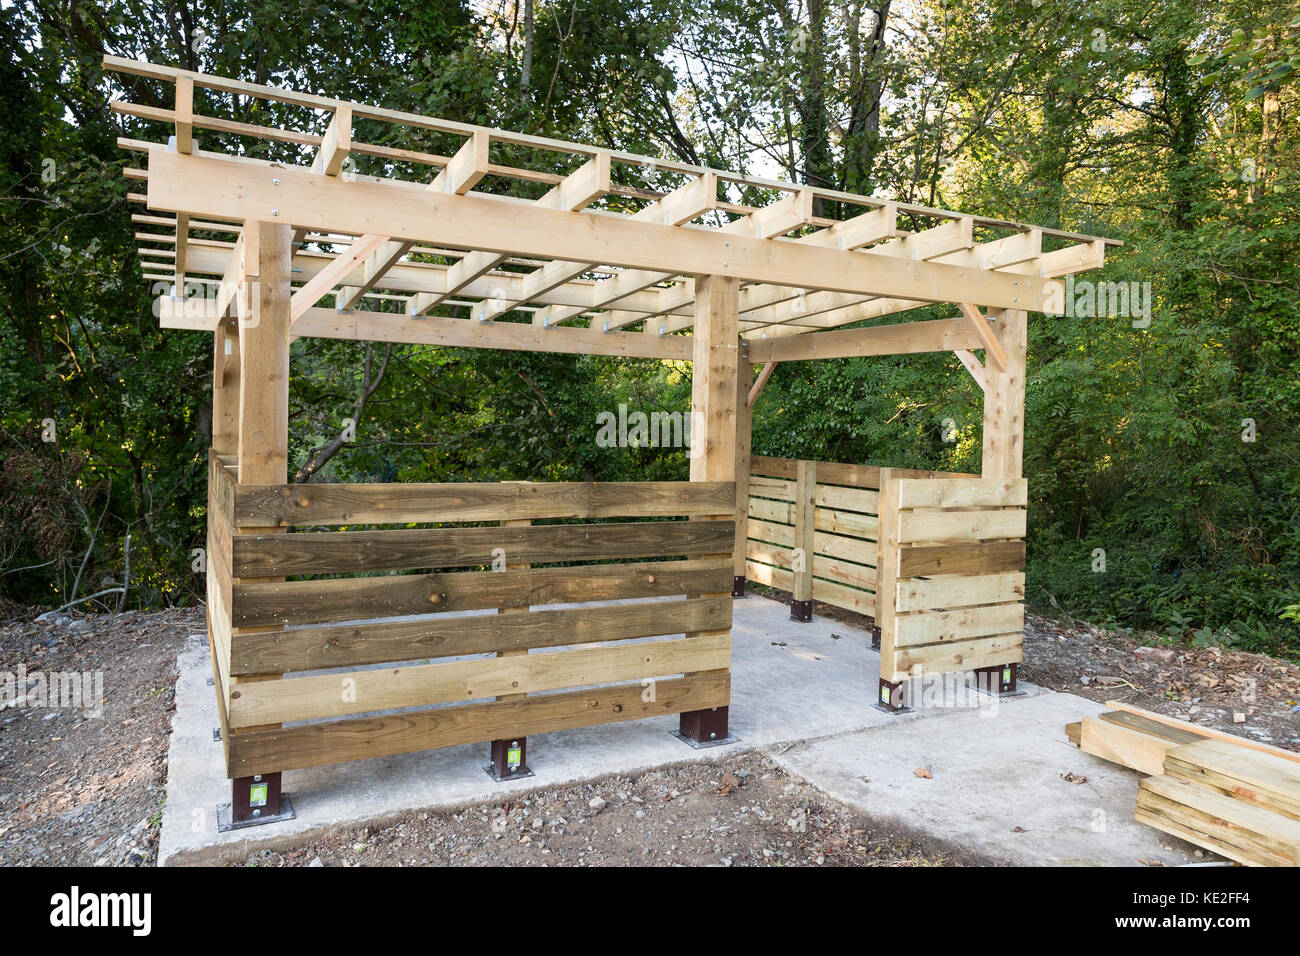 timber frame building detail of construction Stock Photo: 163554584